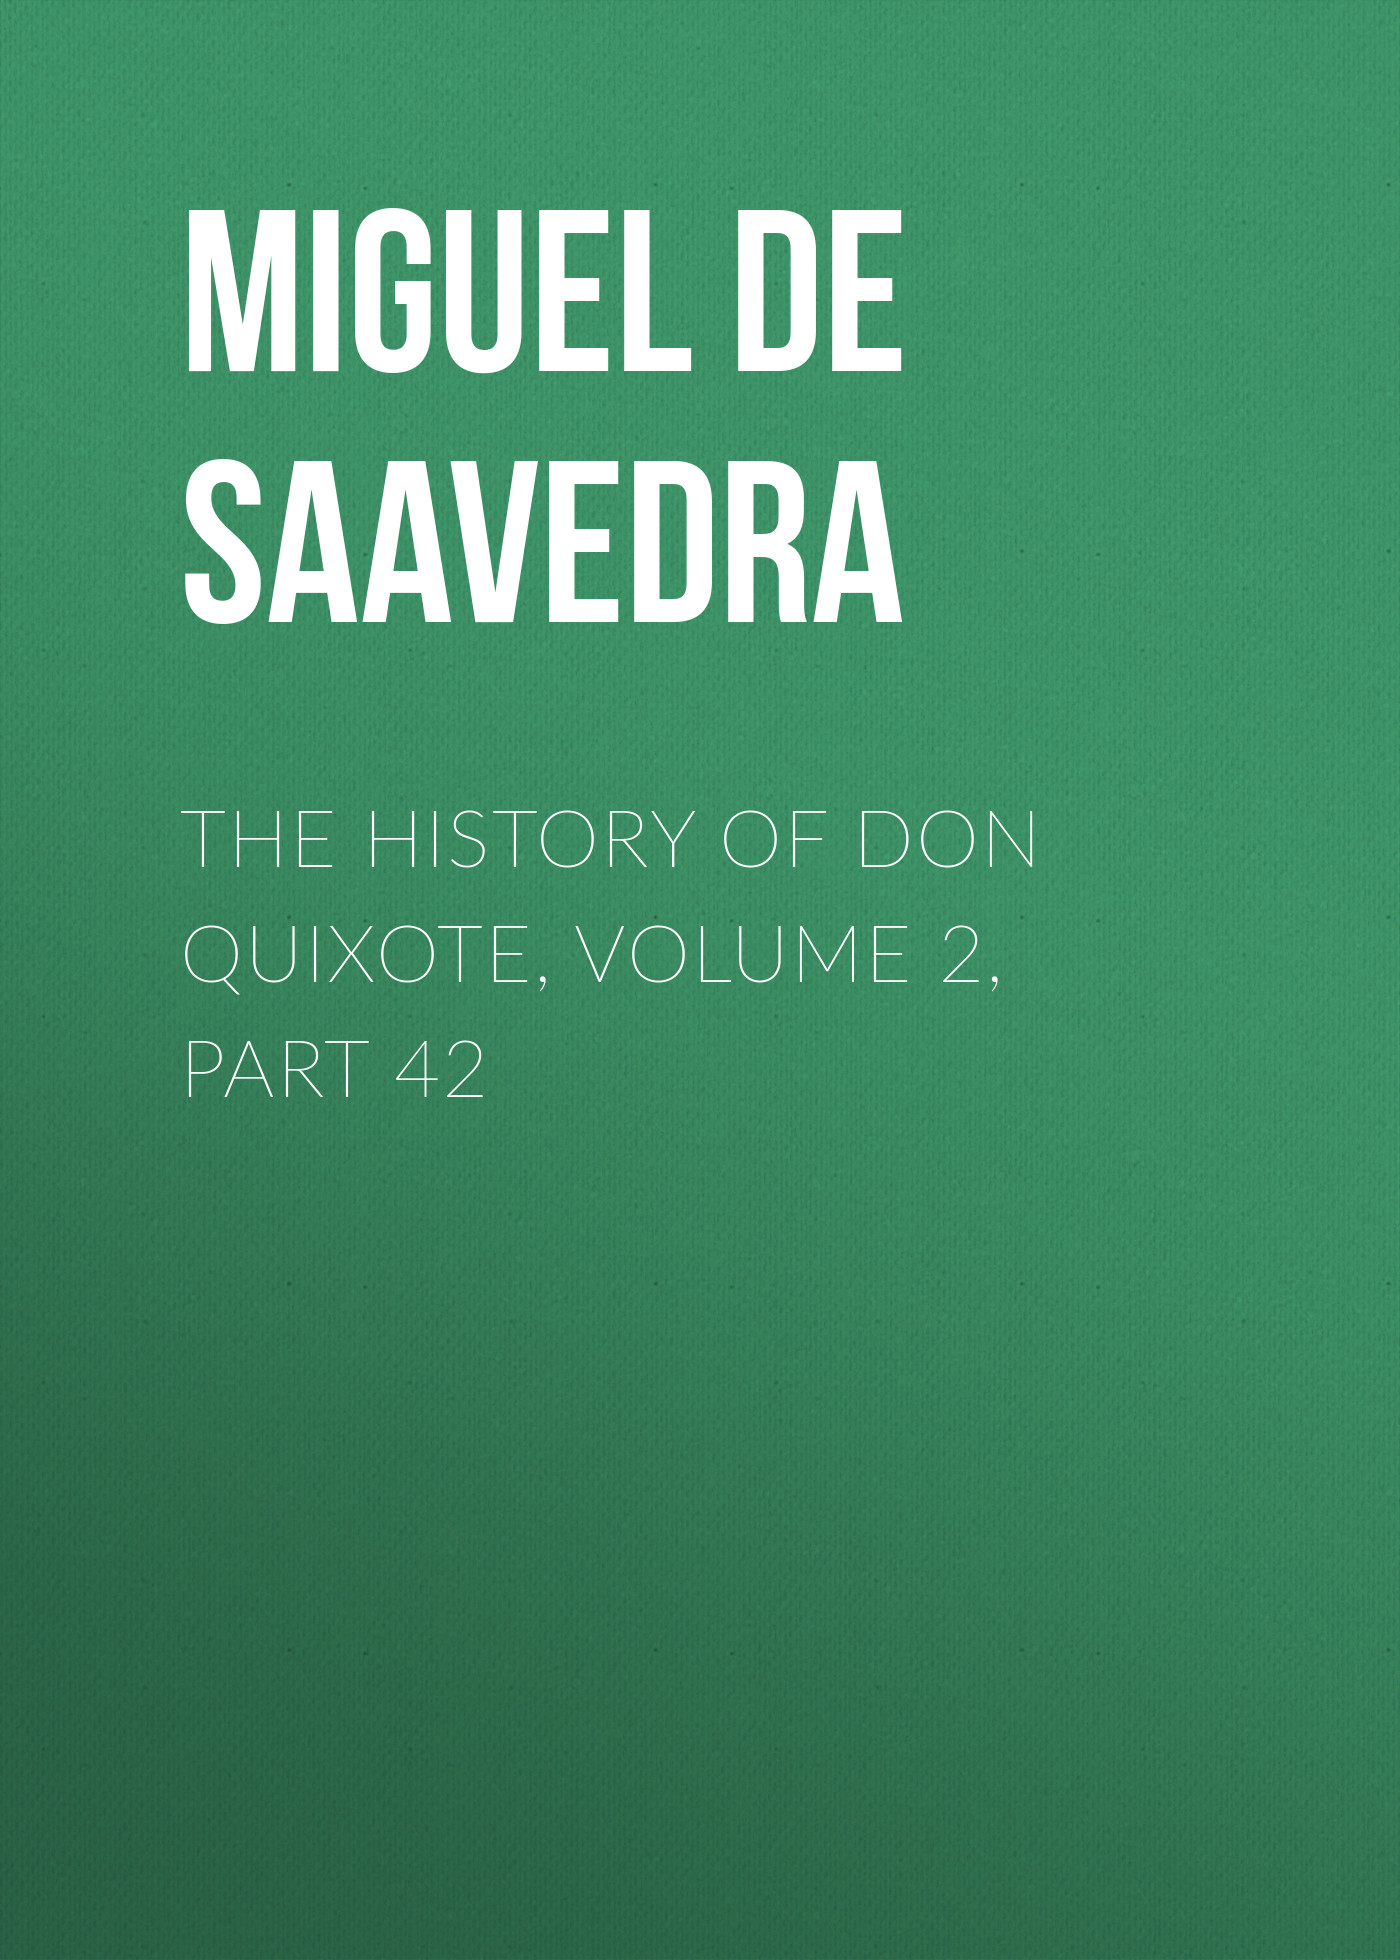 the history of don quixote volume 2 part 42